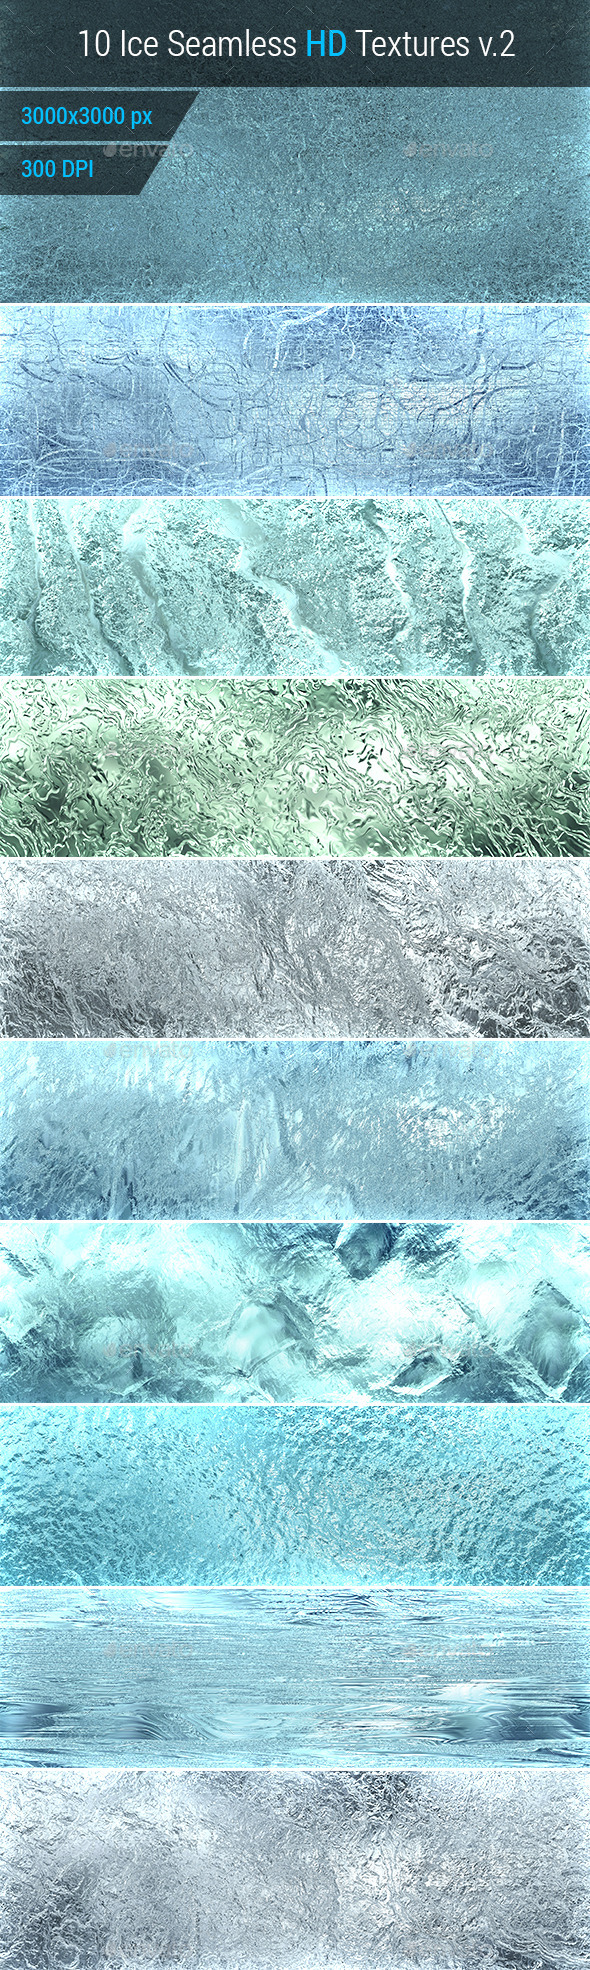 GraphicRiver Ice Seamless and Tileable Background Texture v.2 10193553